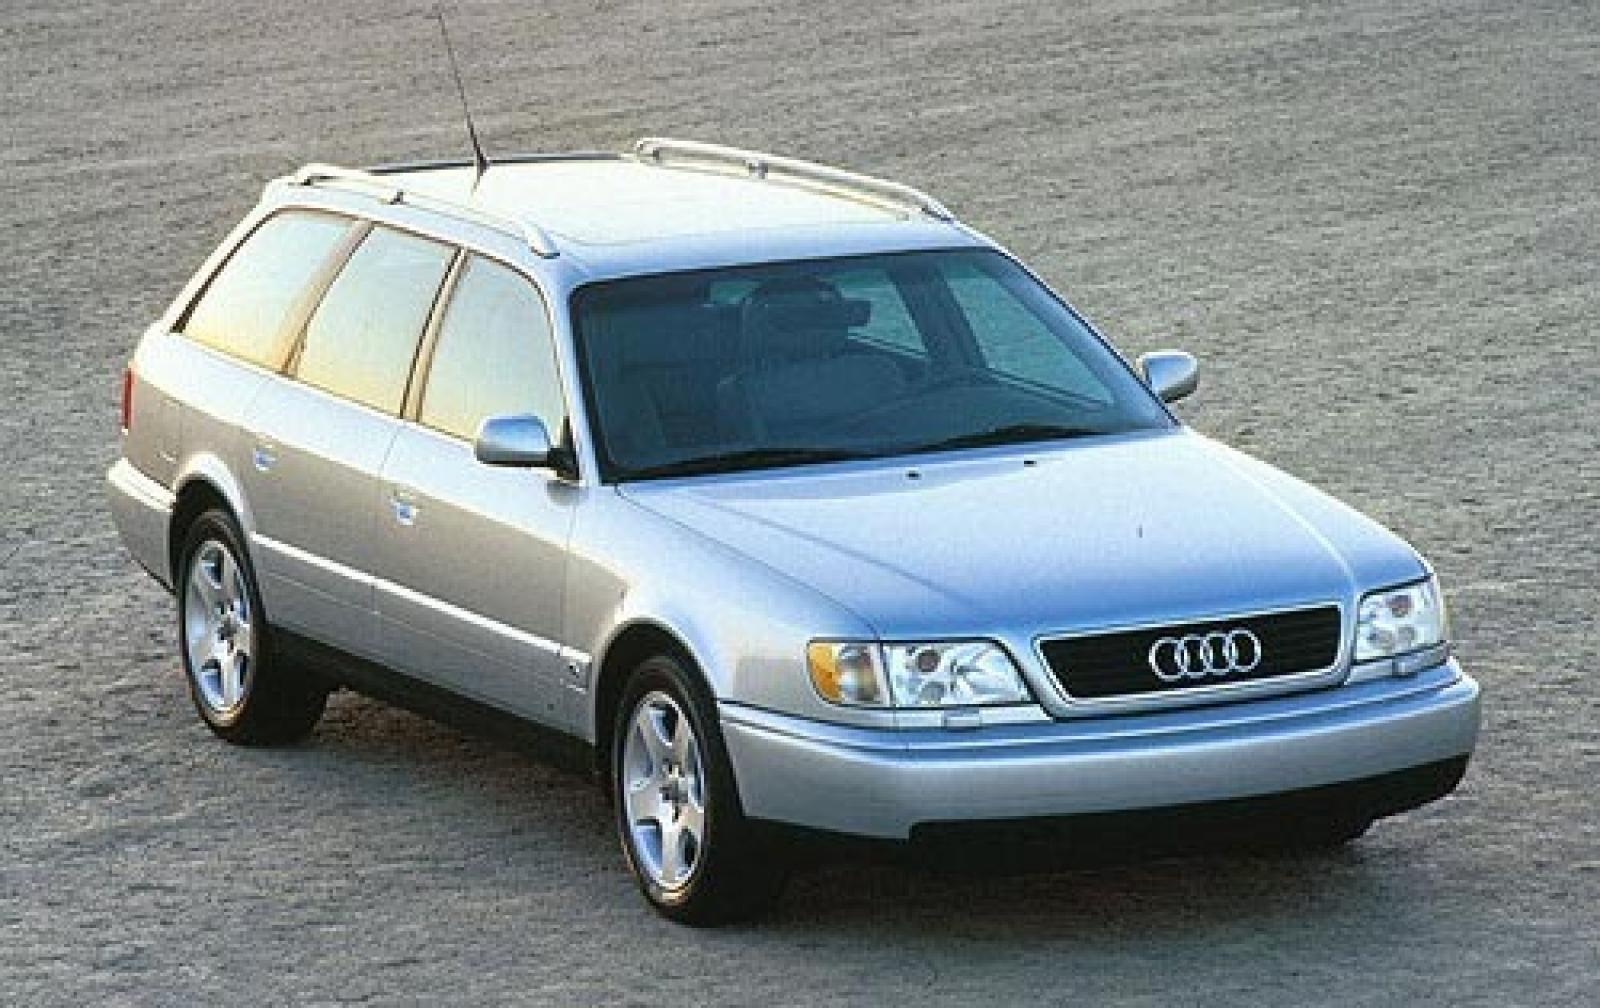 1997 audi a6 information and photos zombiedrive. Black Bedroom Furniture Sets. Home Design Ideas